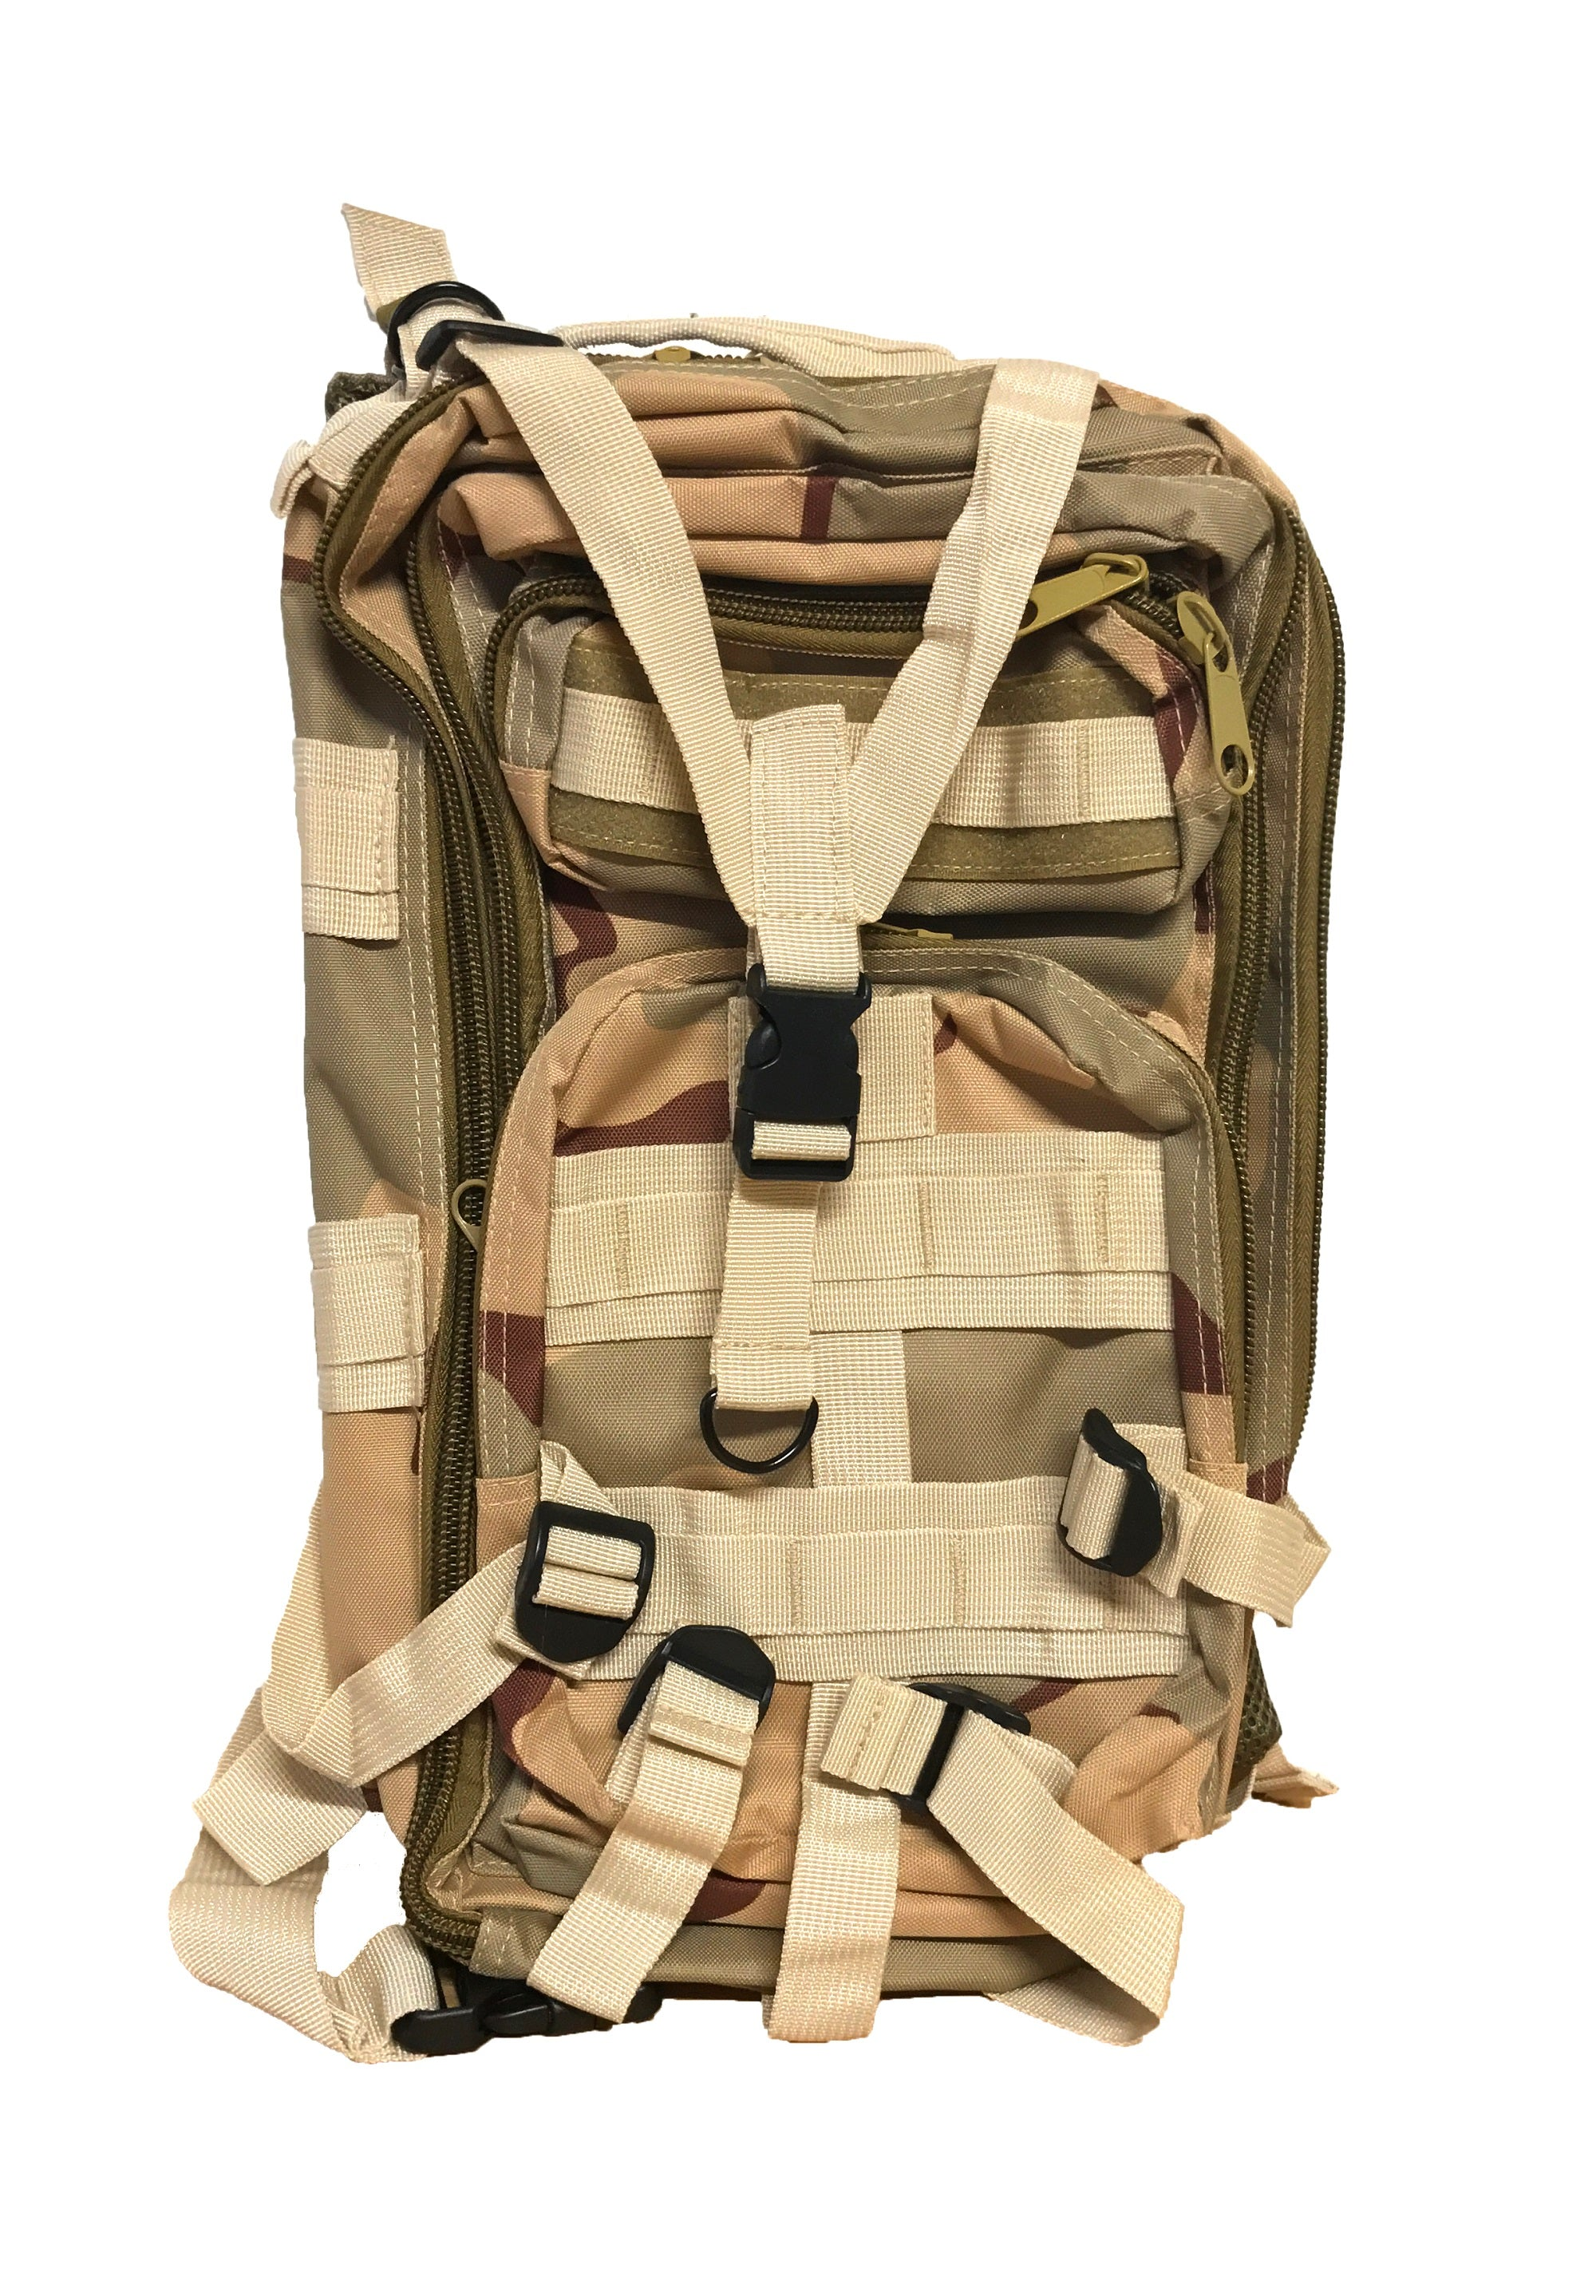 30L Military Molle Camping Backpack Tactical Hiking Travel Bag Three-Toned Desert